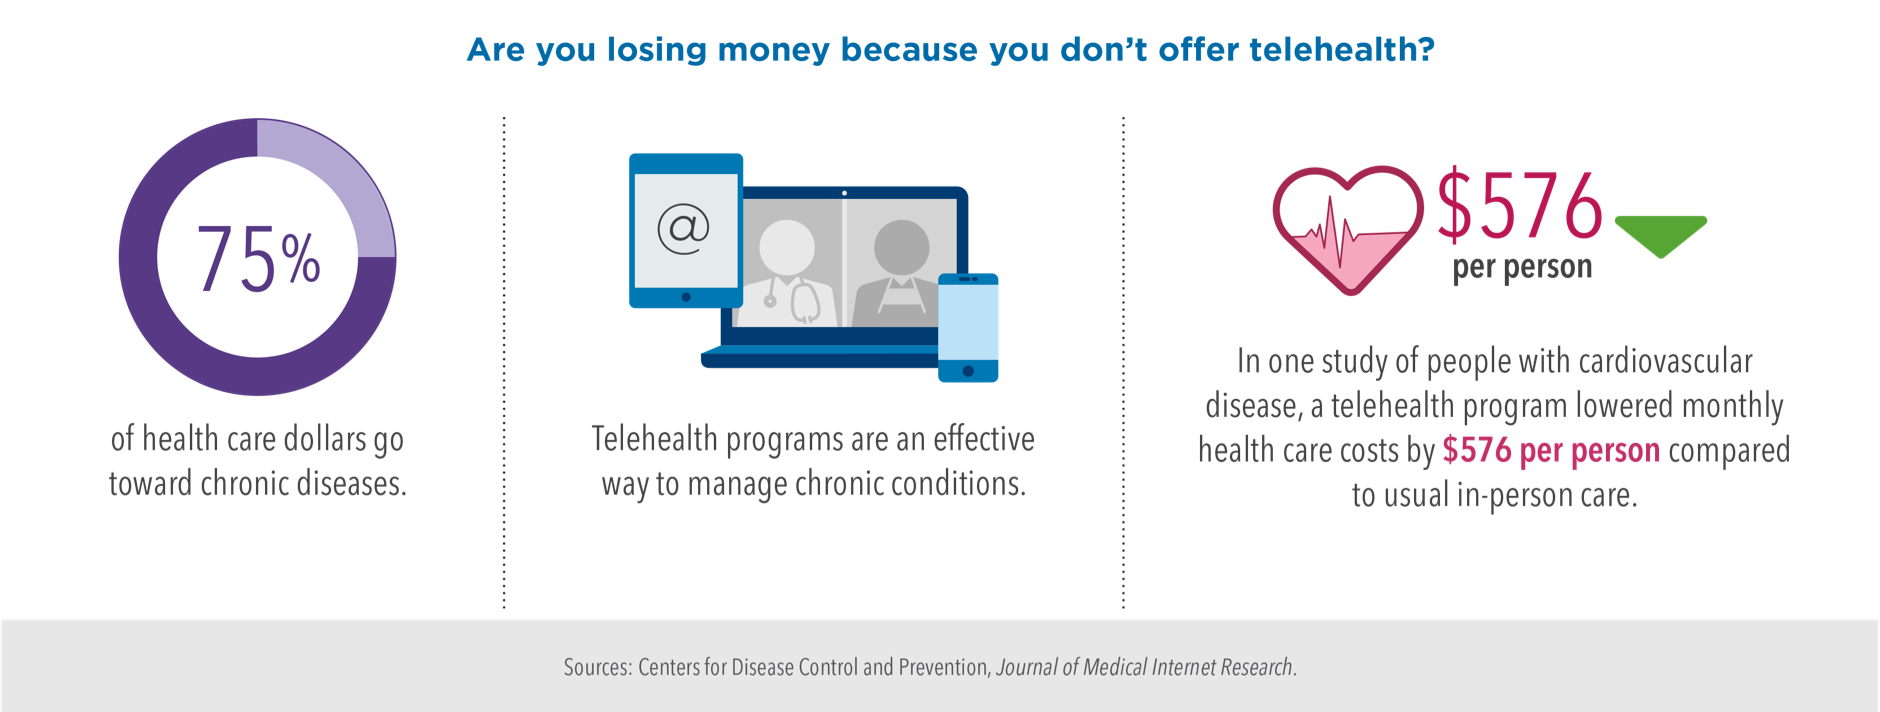 Infographic: Are you losing money because you don't offer telehealth